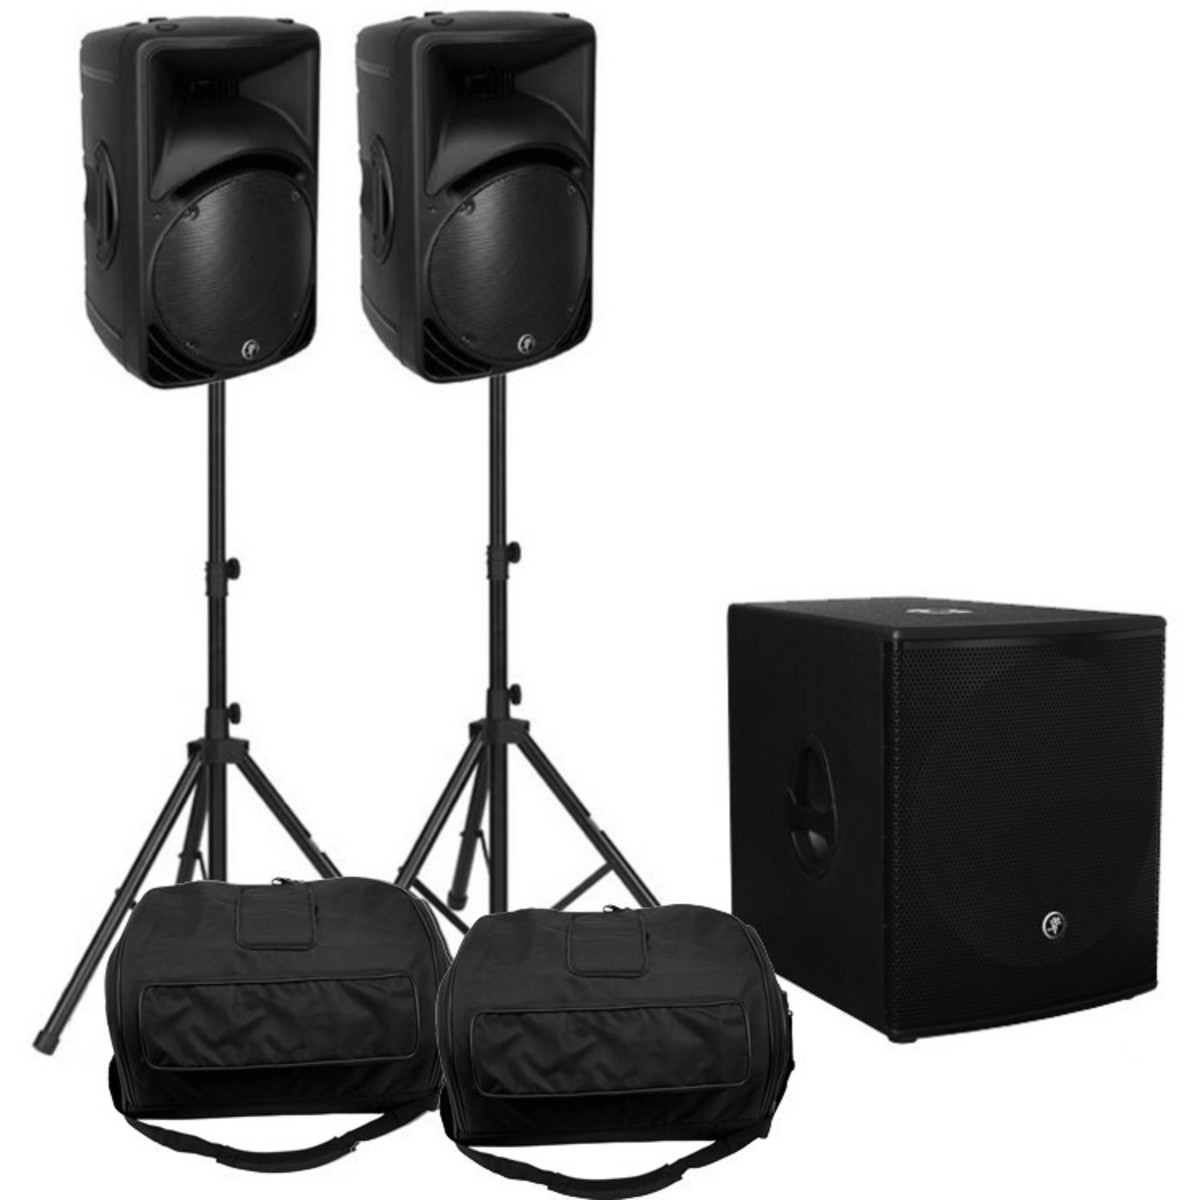 Disc mackie srm450 pa pack 1300w with sub stands at for Stand pack